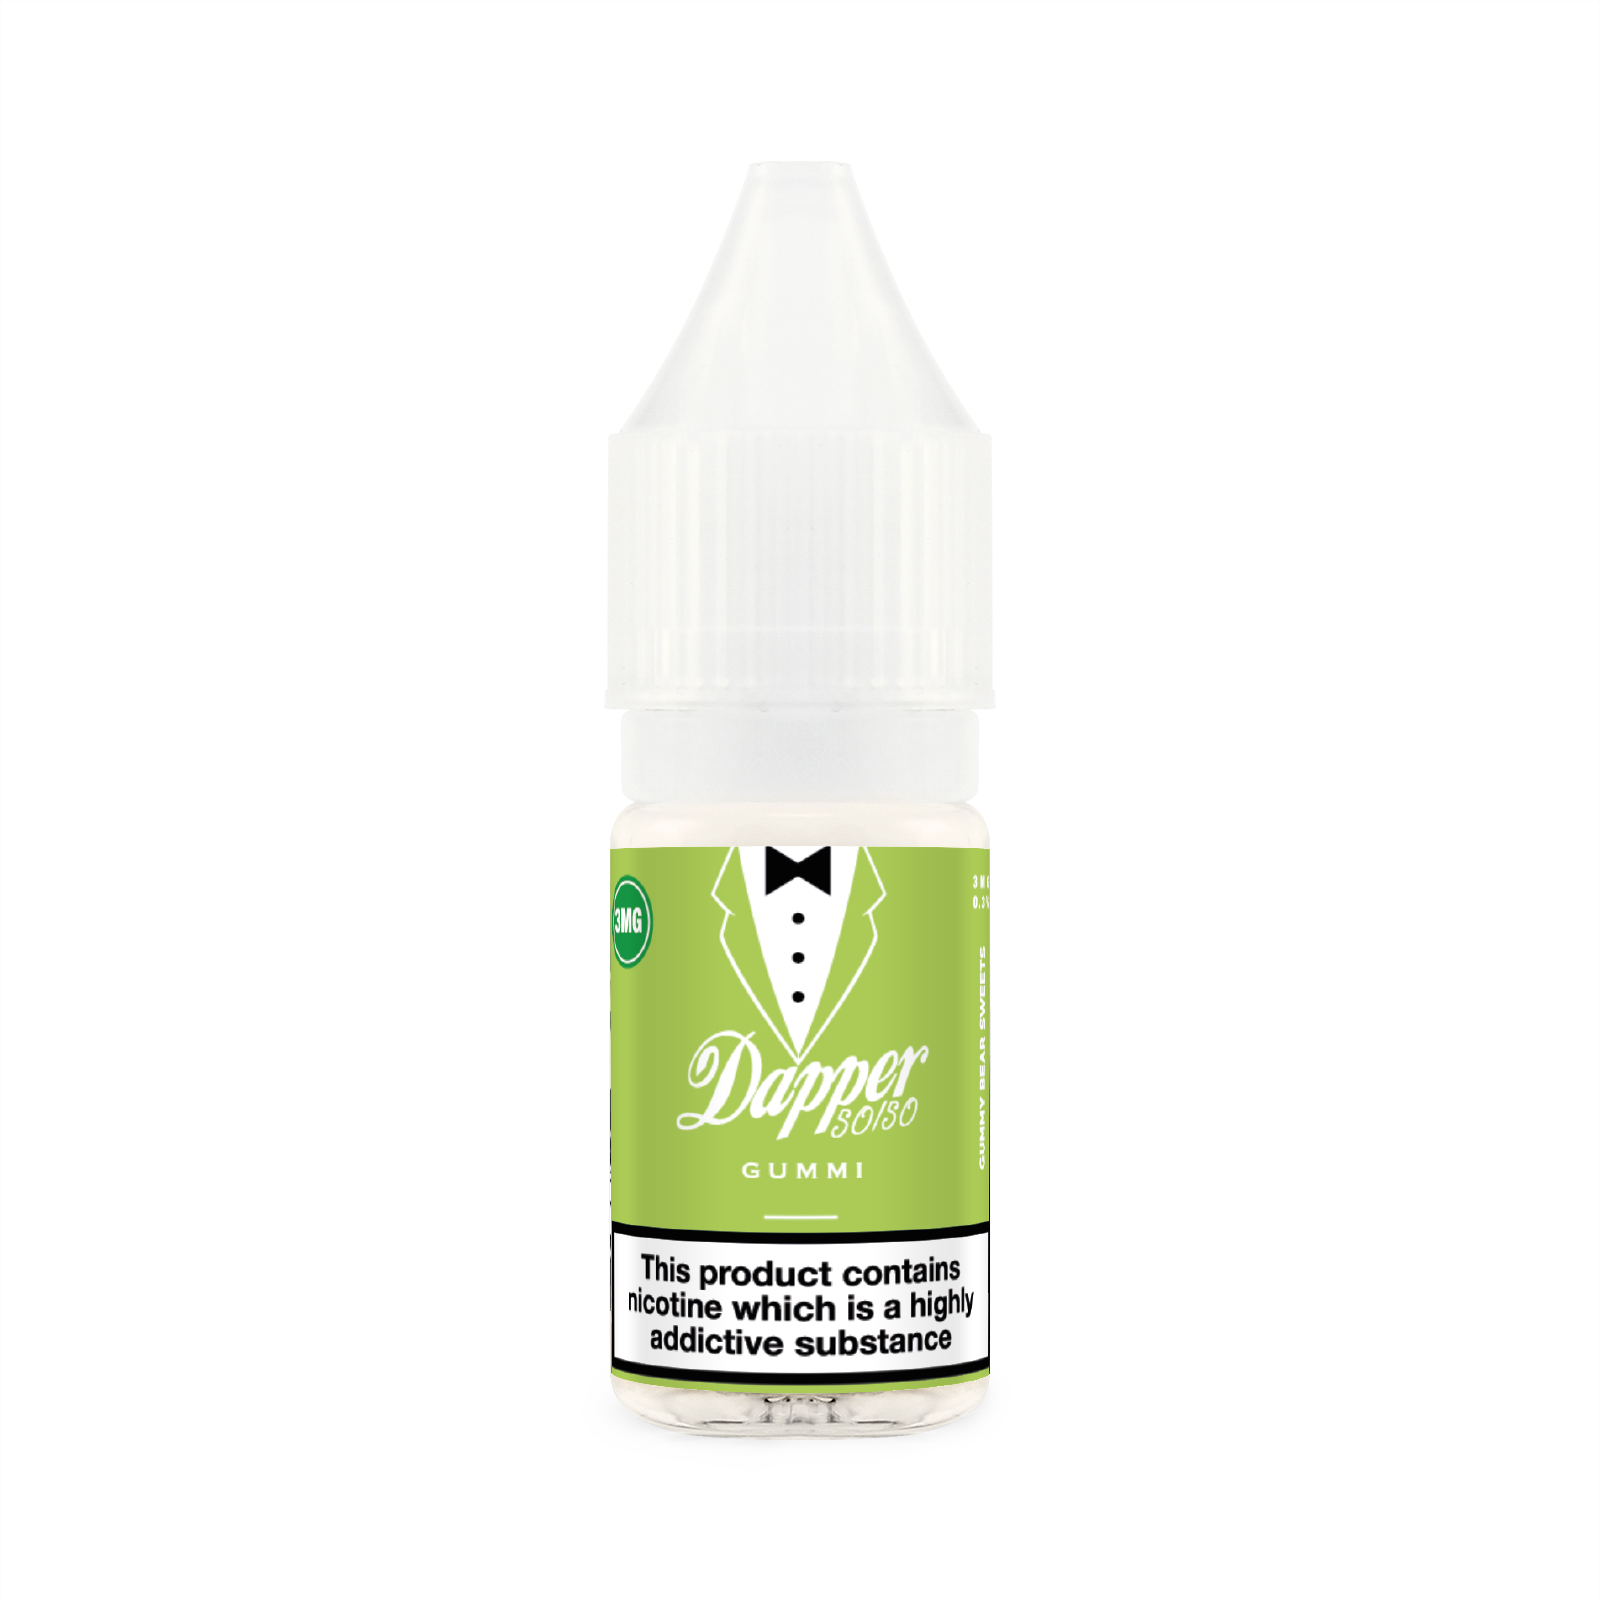 Gummi - Dapper 10ml